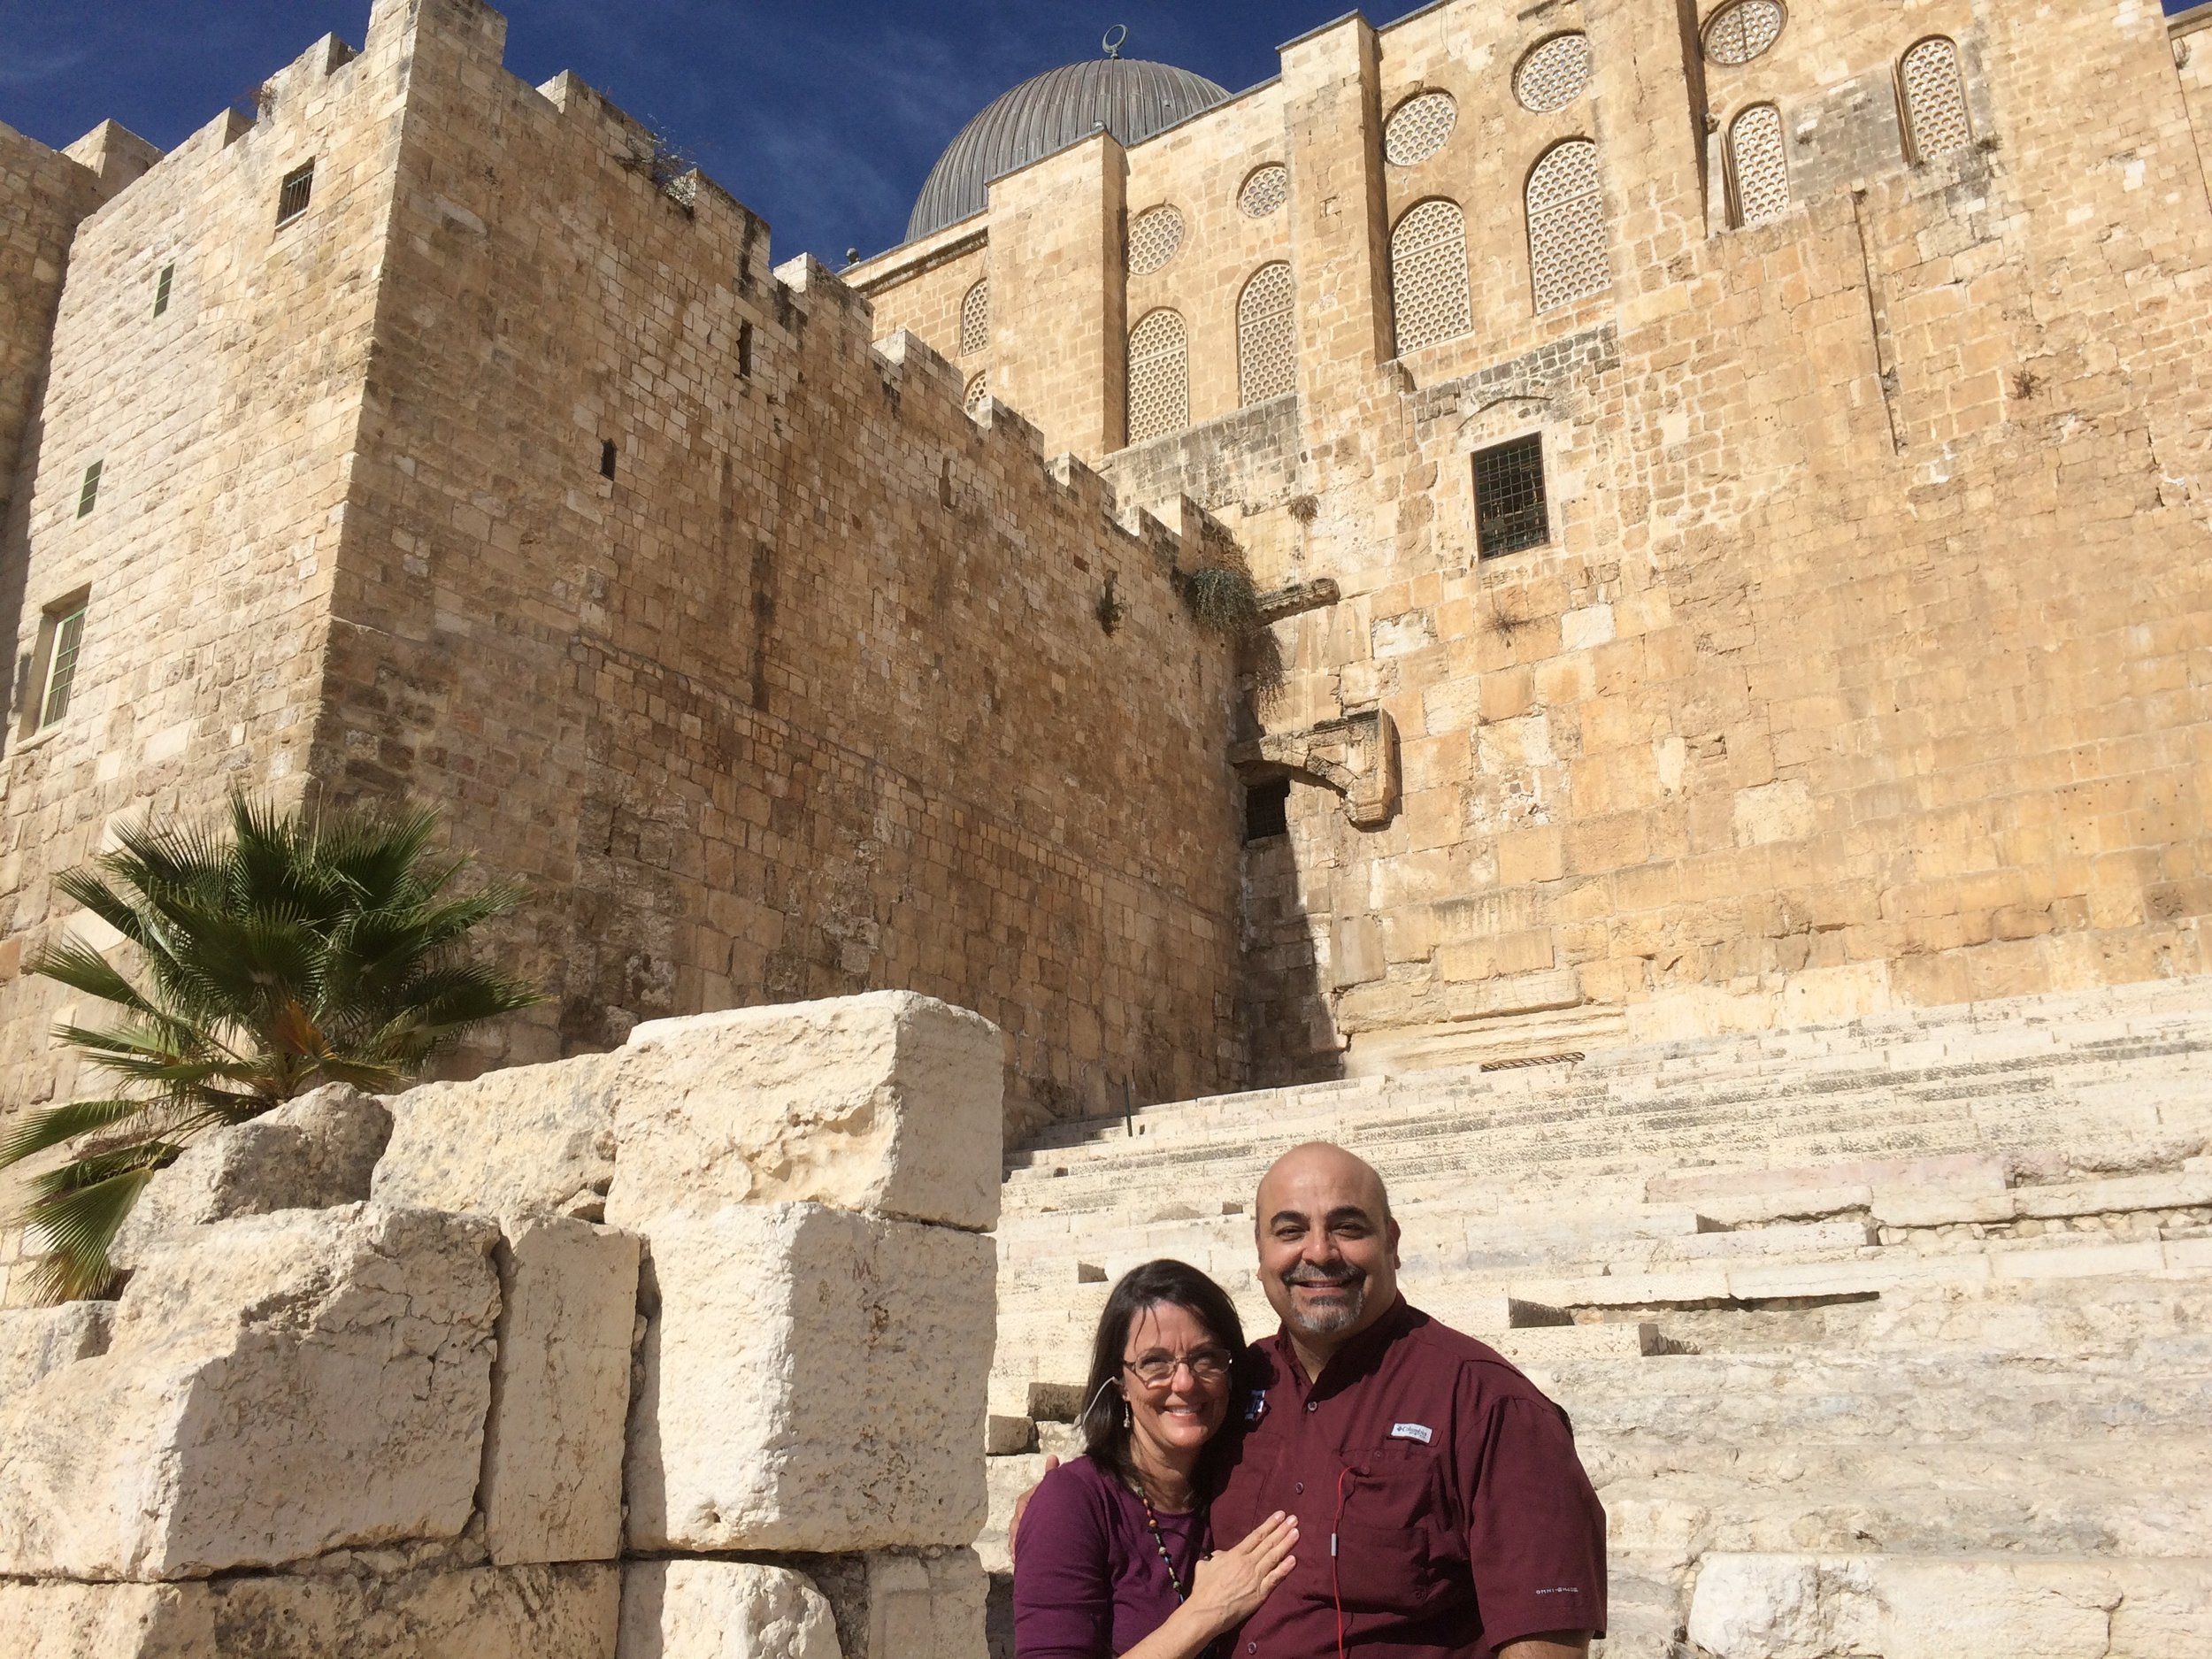 Standing in front of the entry gate of the Temple in the time of Jesus